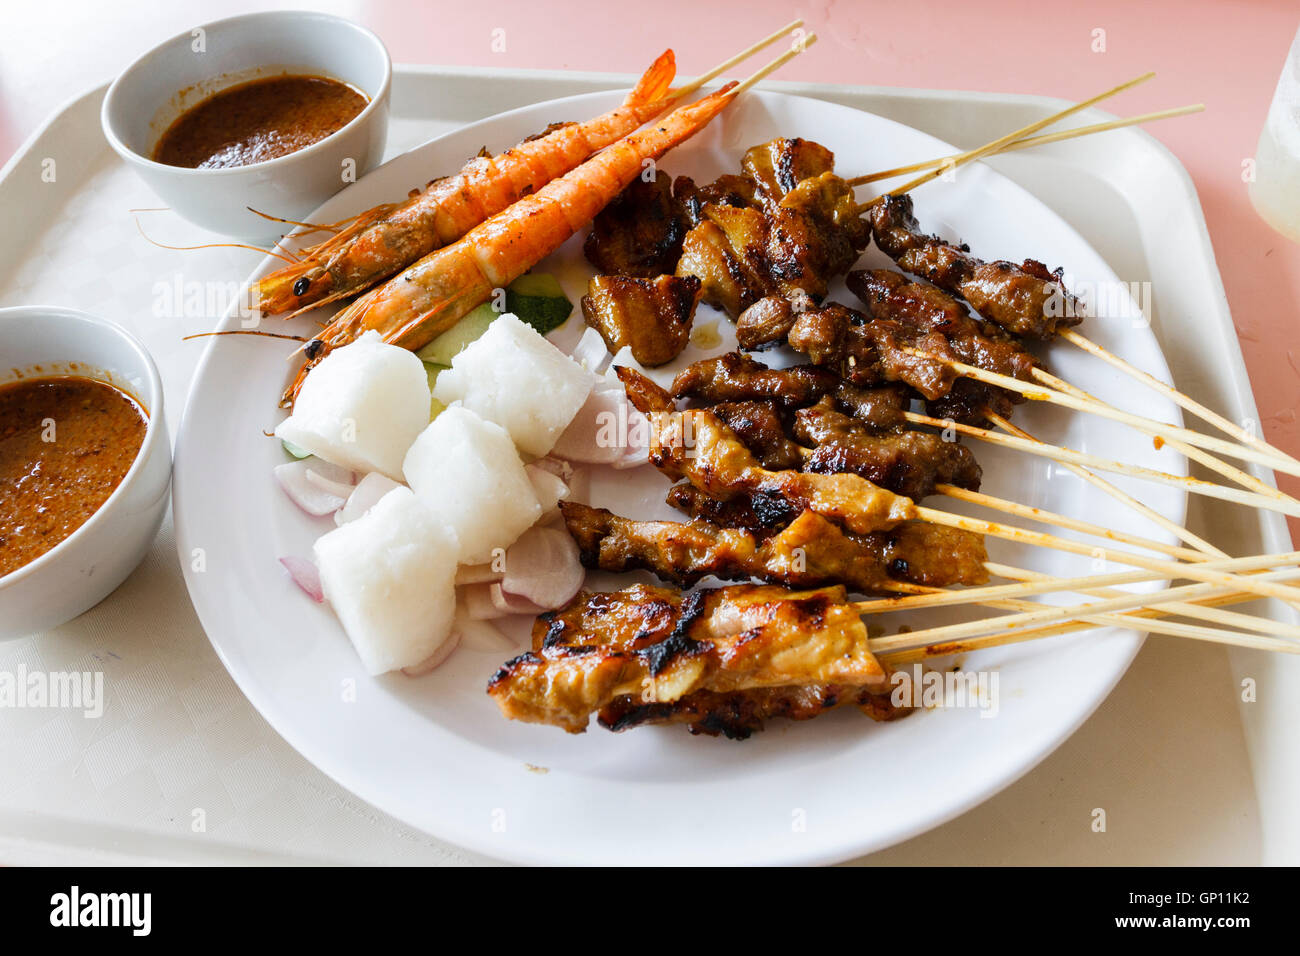 Plate of mixed satay food on a plate with bowls of satay sauce, Singapore. - Stock Image